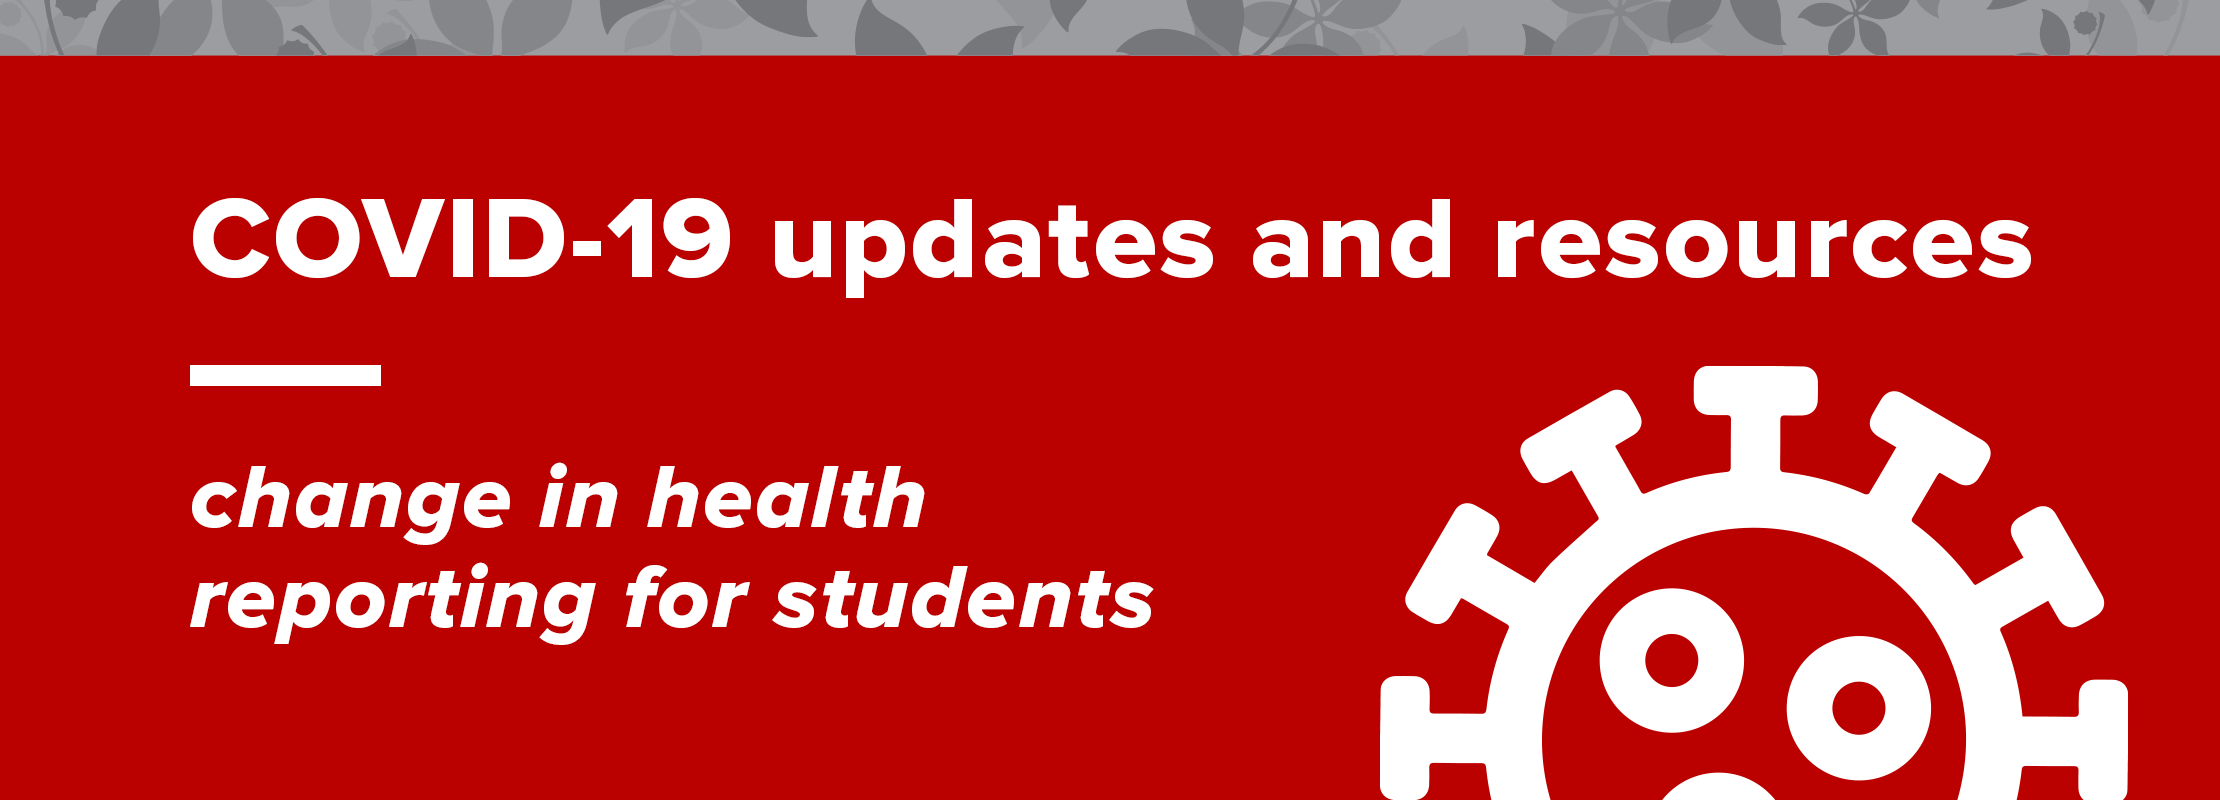 COVID-19 updates and resources: change in health reporting for students